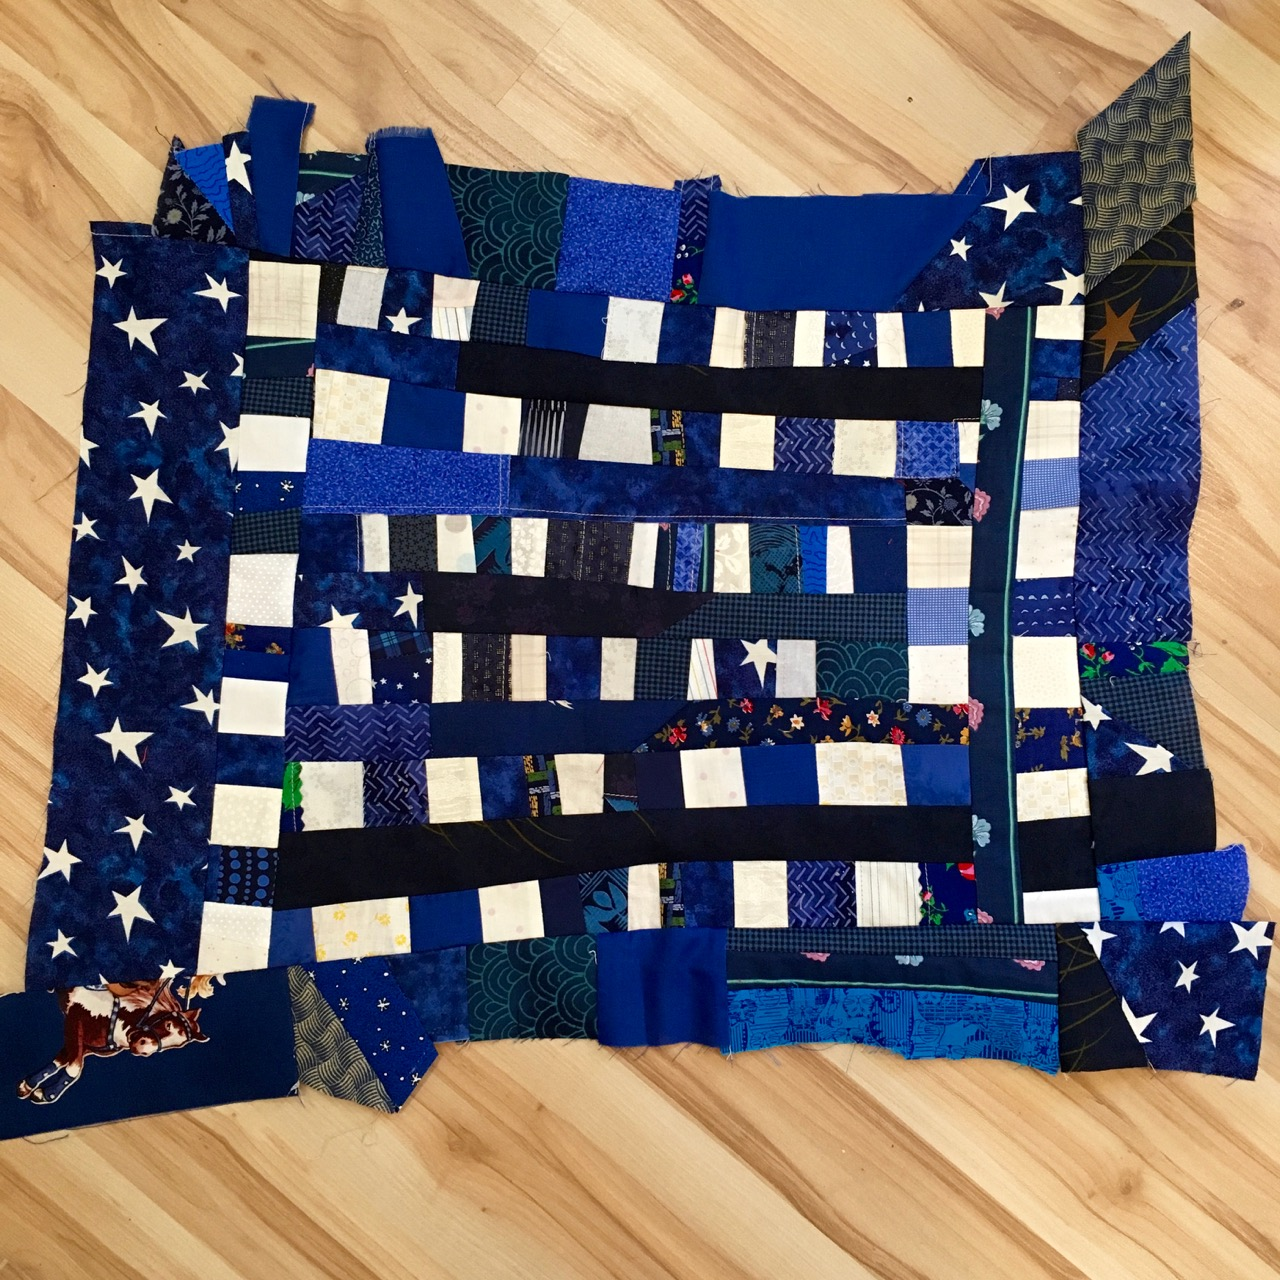 Noel Christmas Carolers Decoration Felt Clothes Big By: American Flag Quilt